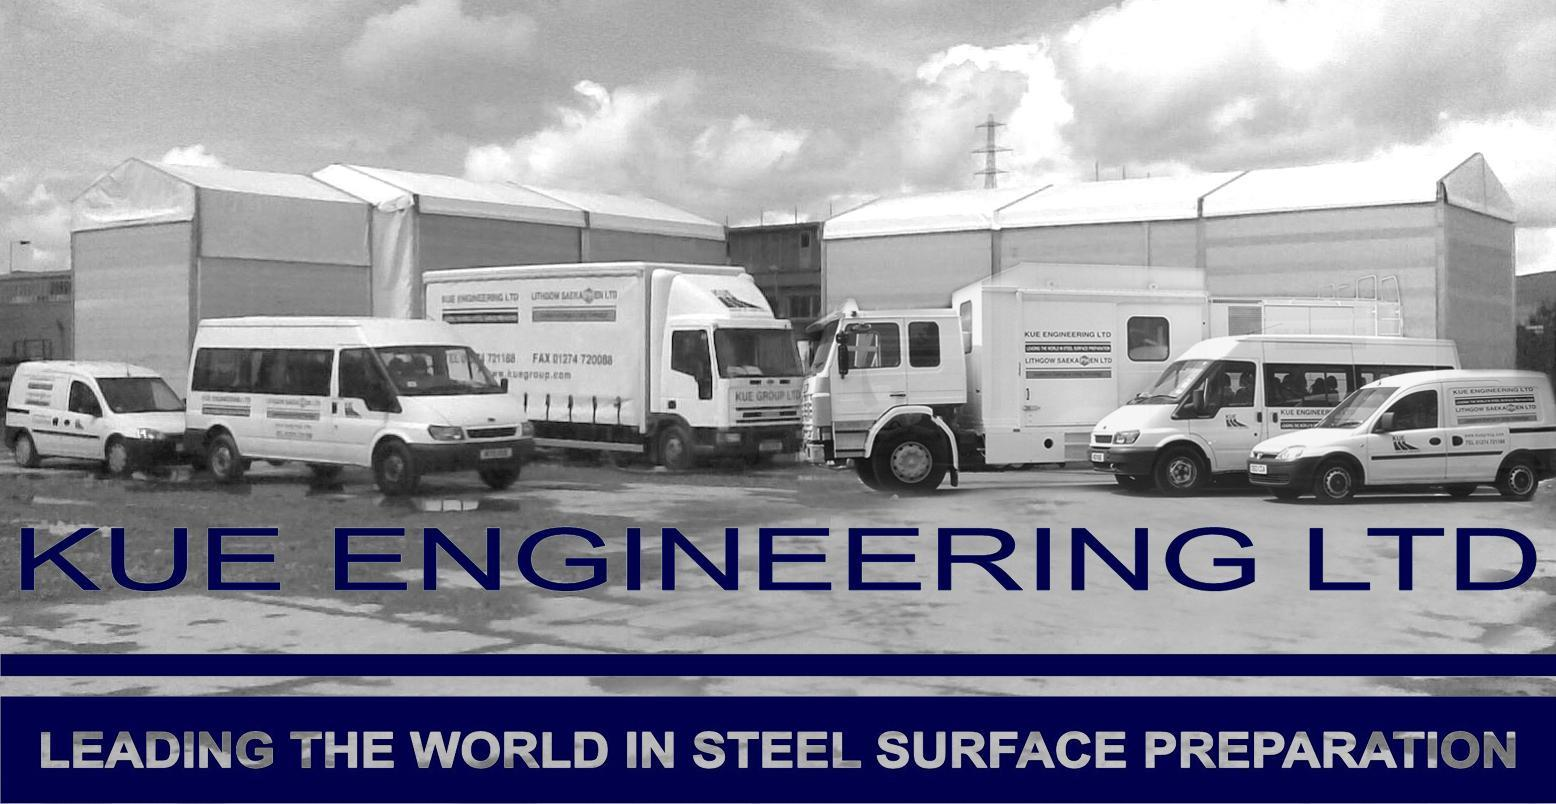 steel surface preparation experts